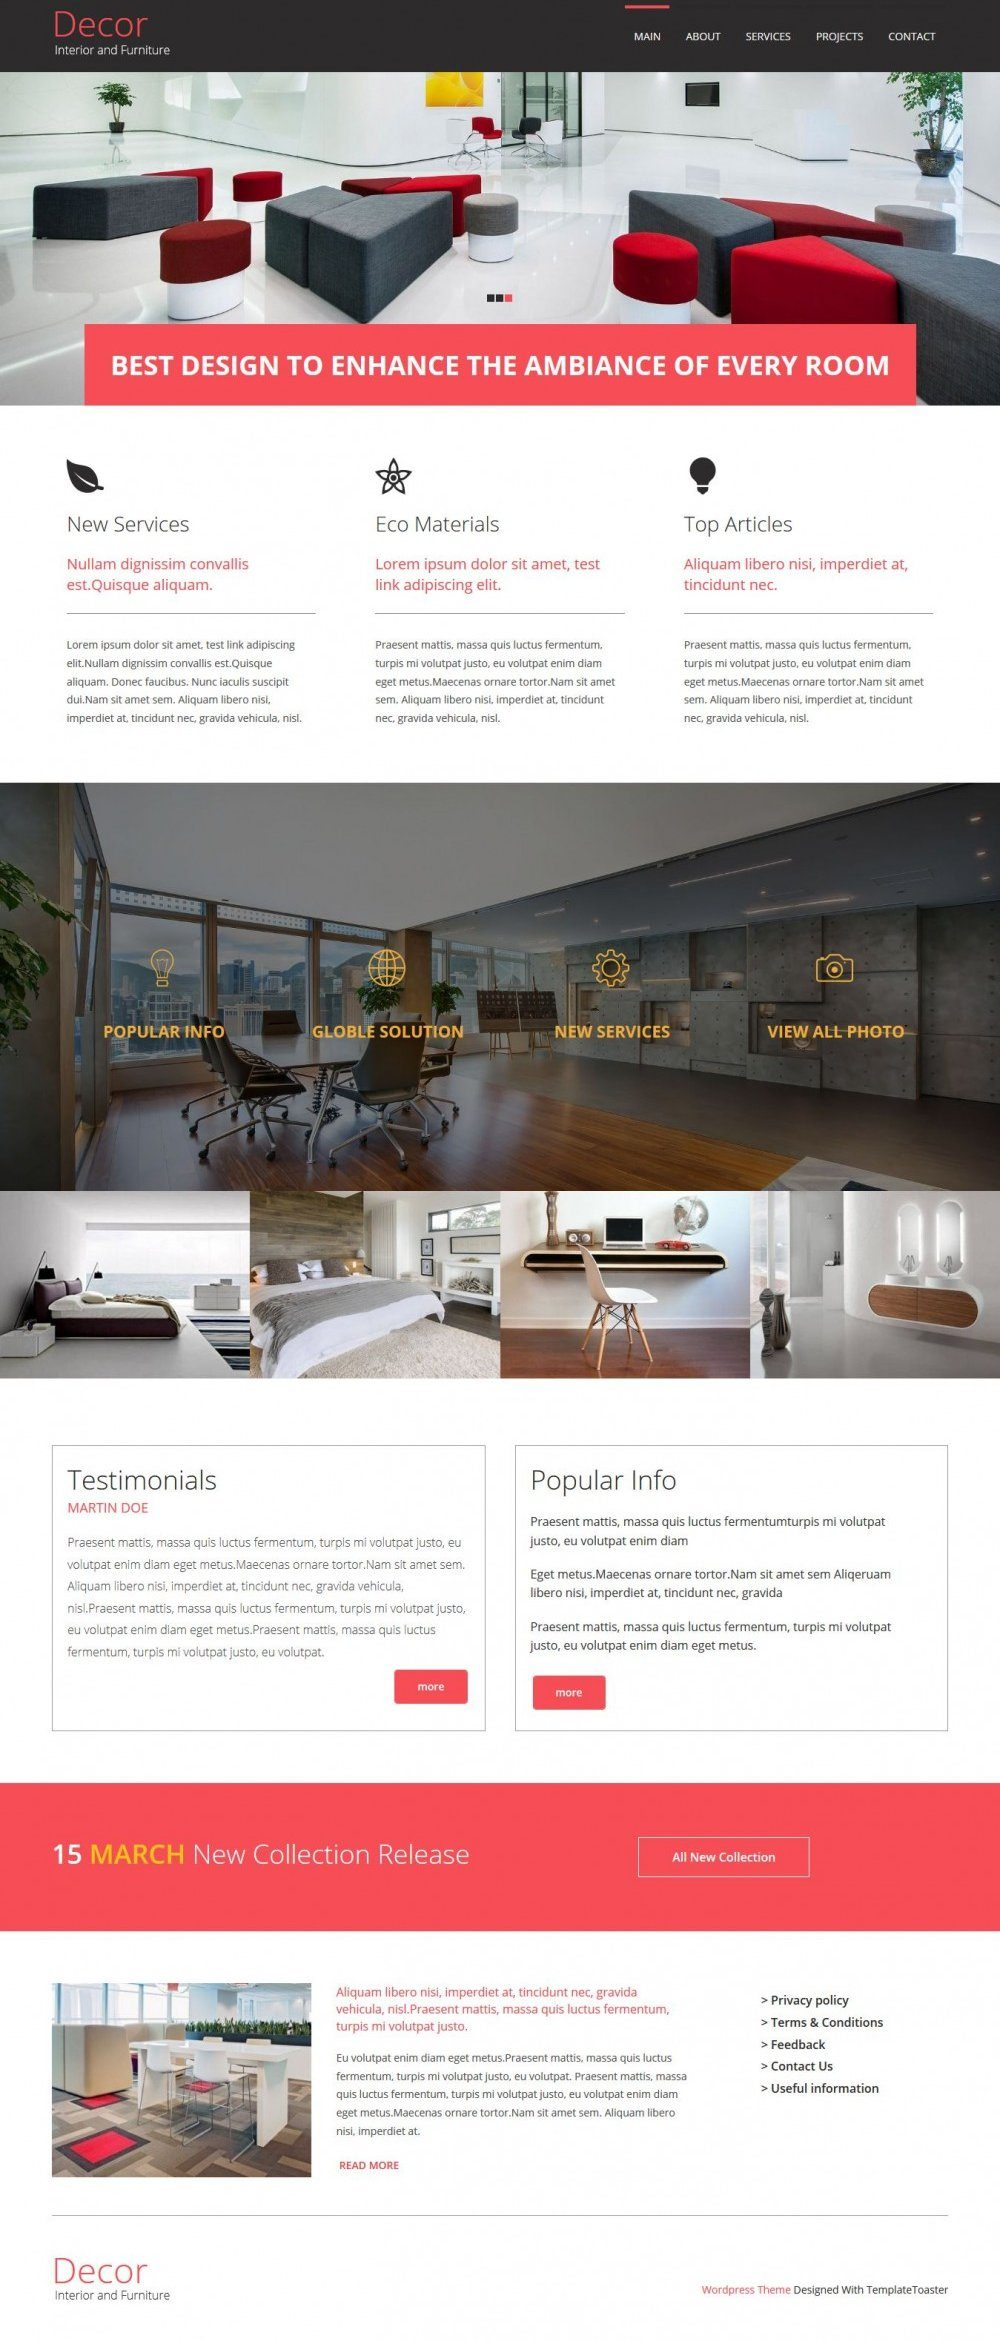 Decore - Interior and Furniture Joomla Template